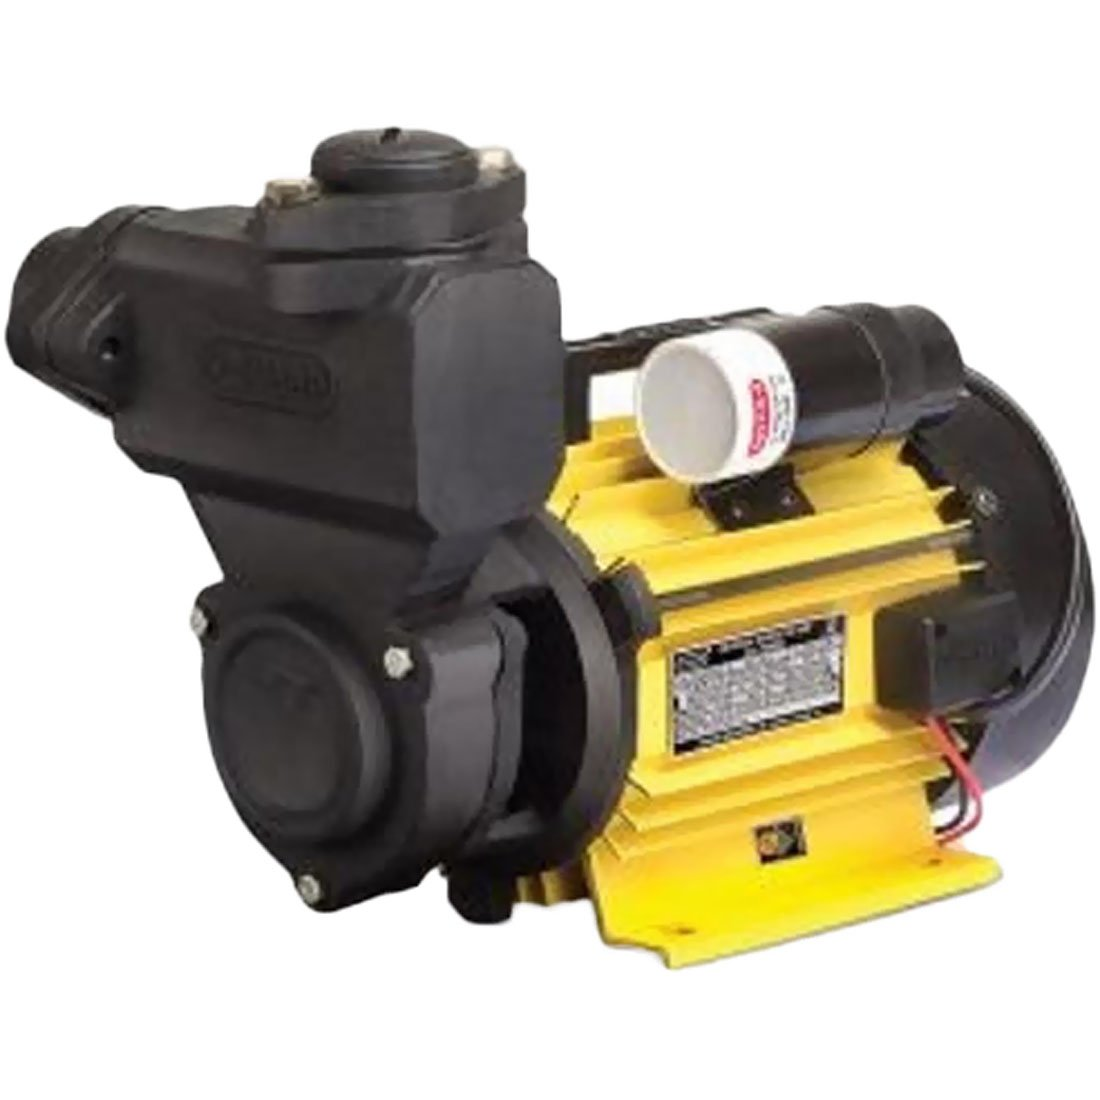 V-Guard Cast Iron 1 Hp Self Priming Water Pump (Multicolour)